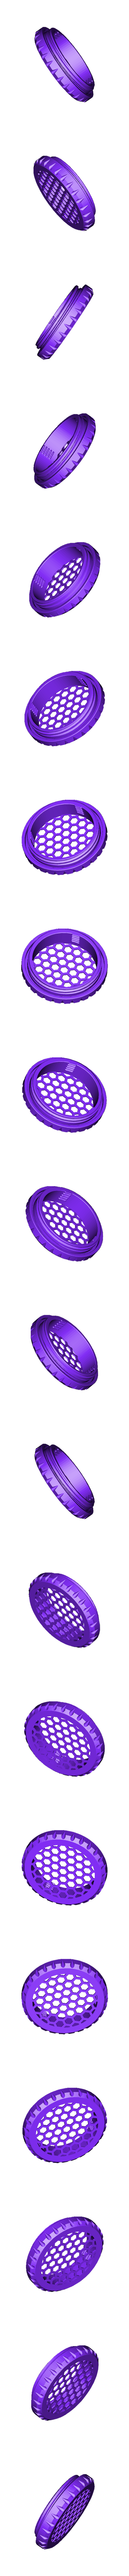 Filter_Right.stl Download free STL file #3DvsCOVID19 Mask filters with side breathing • 3D printer object, alonsothander